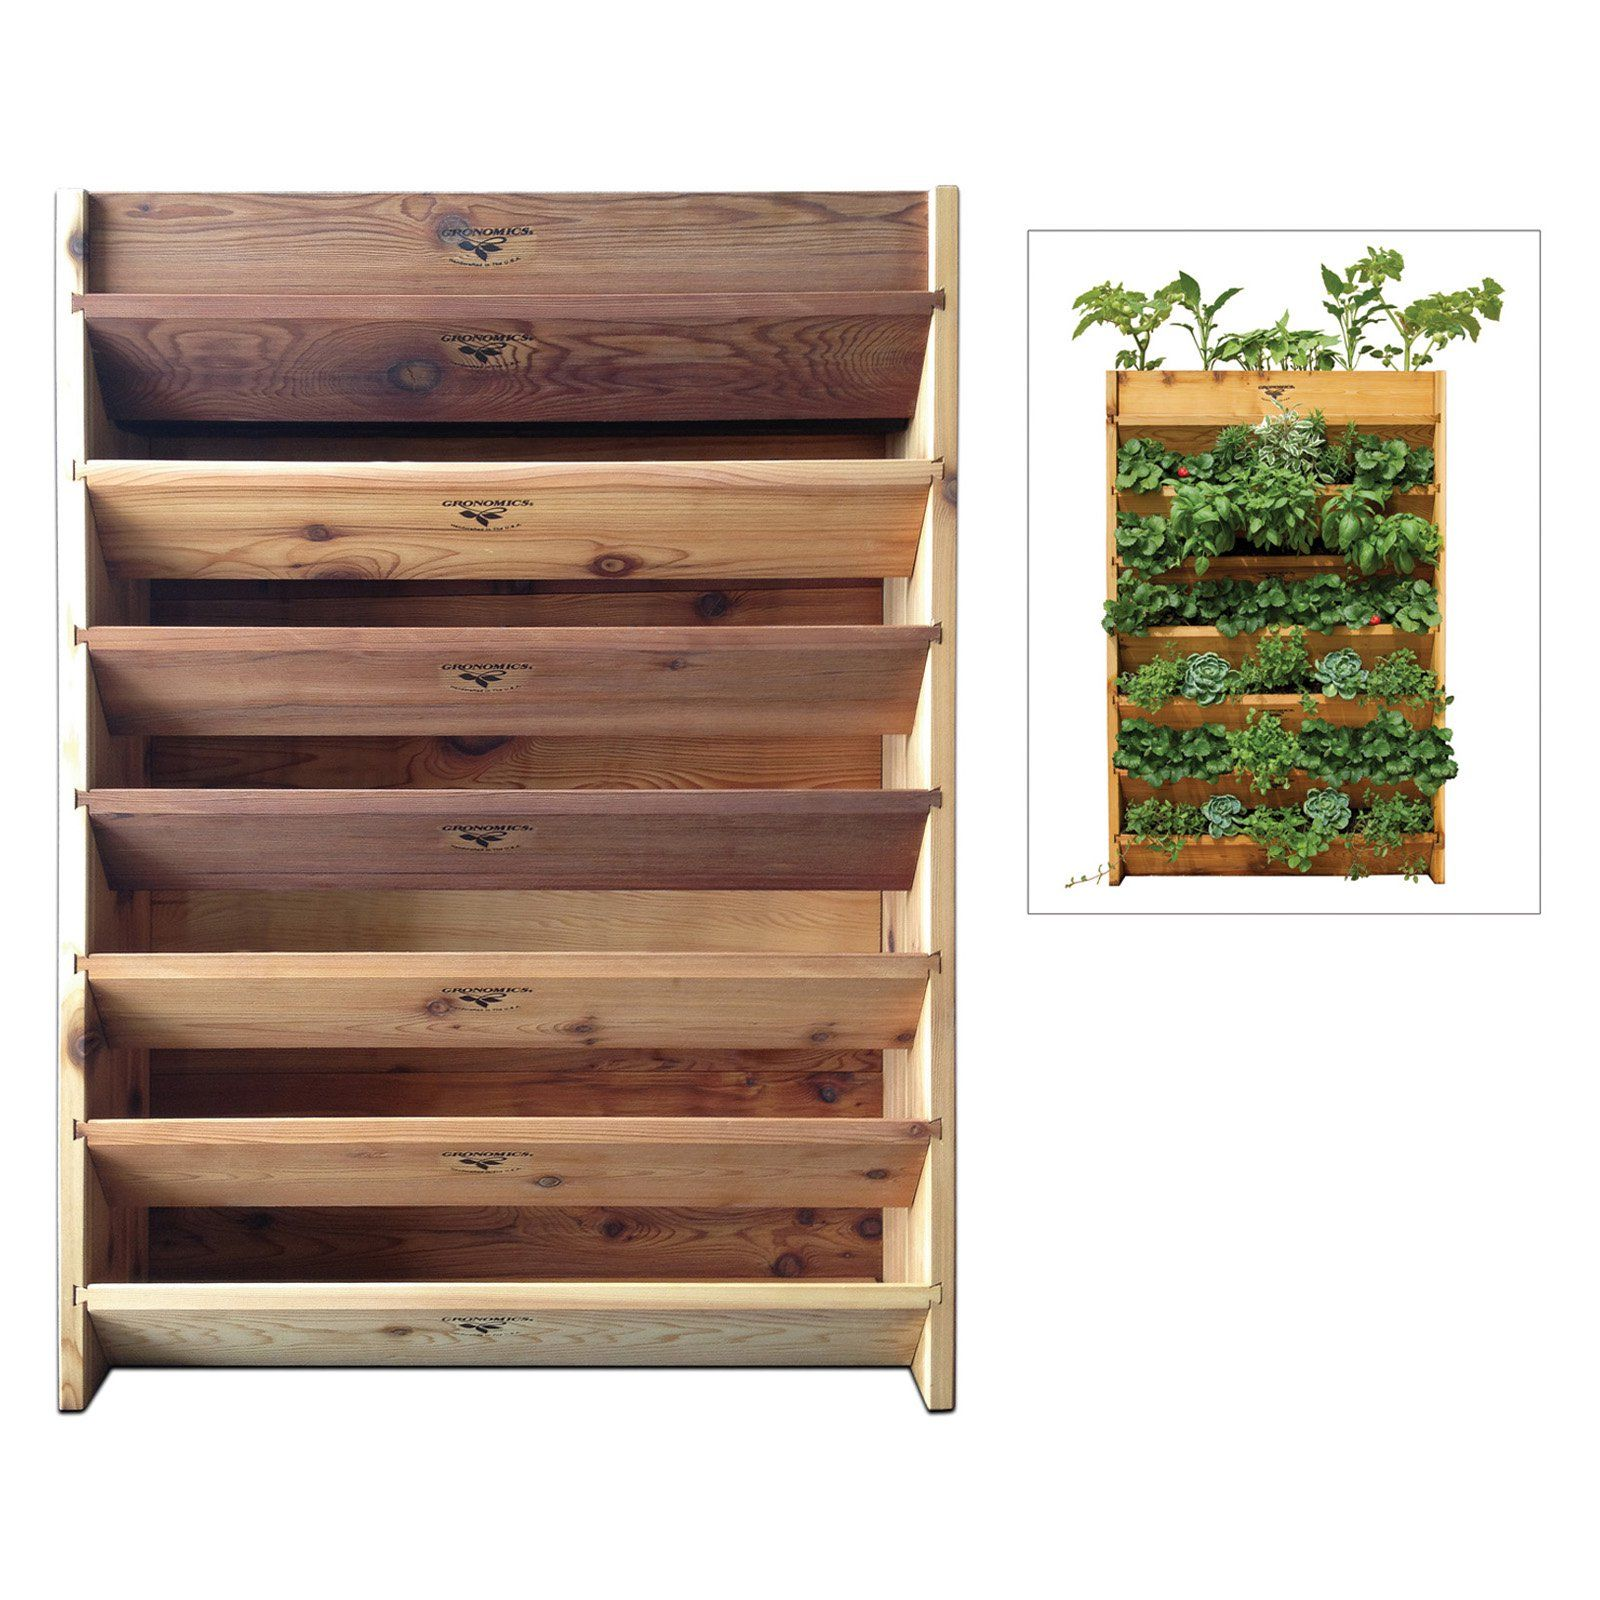 Gronomics Vertical Garden Planter   Crafted From Western Red Cedar, The  Gronomics Vertical Garden Has